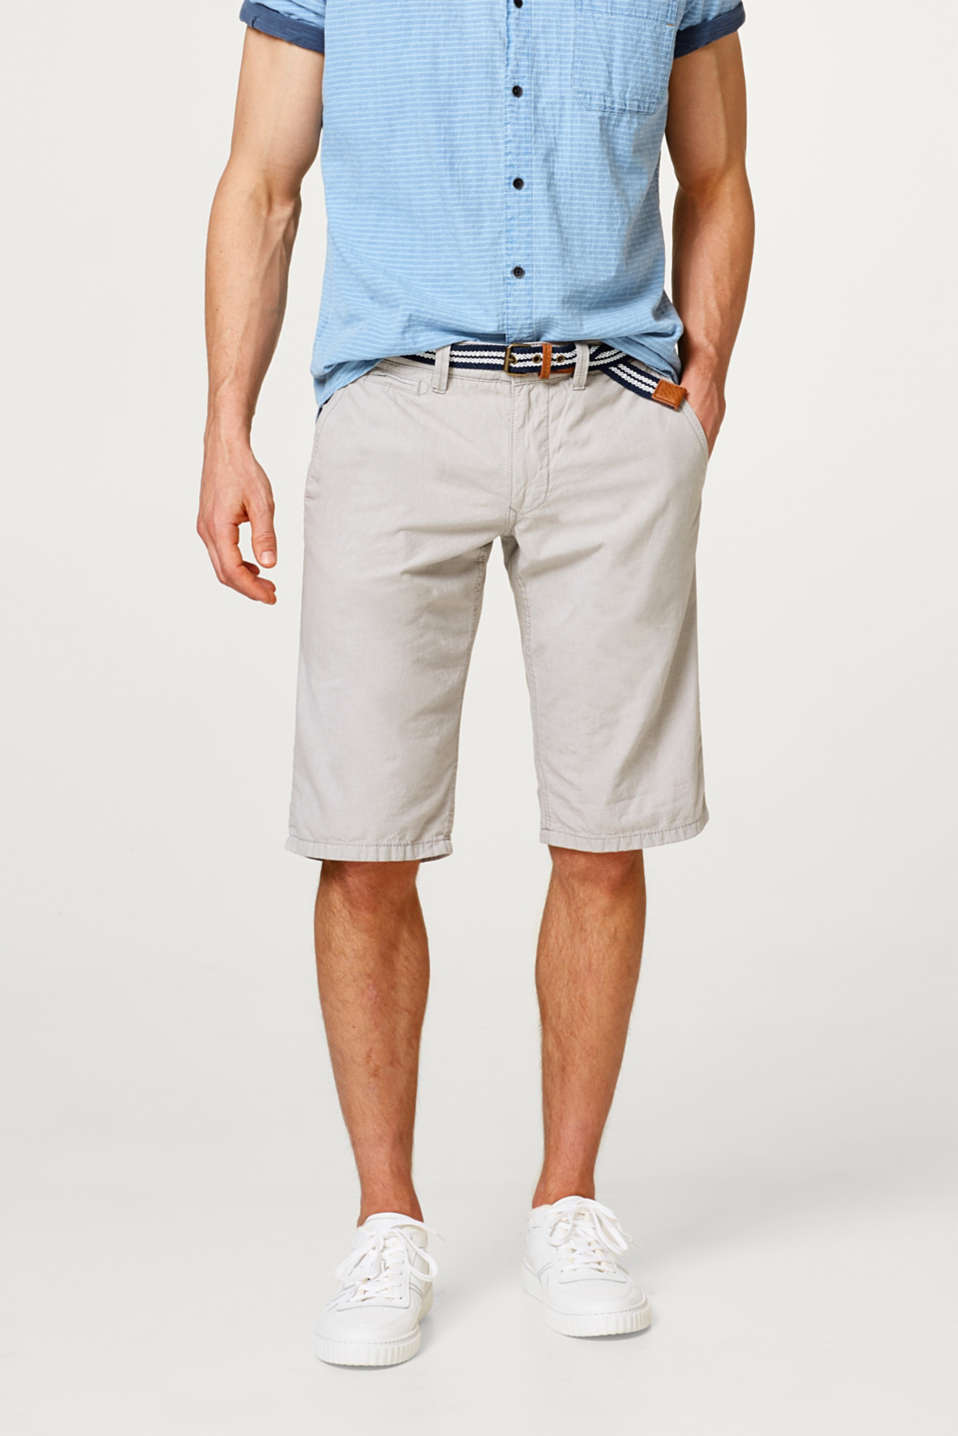 Esprit - Chino shorts, 100% cotton